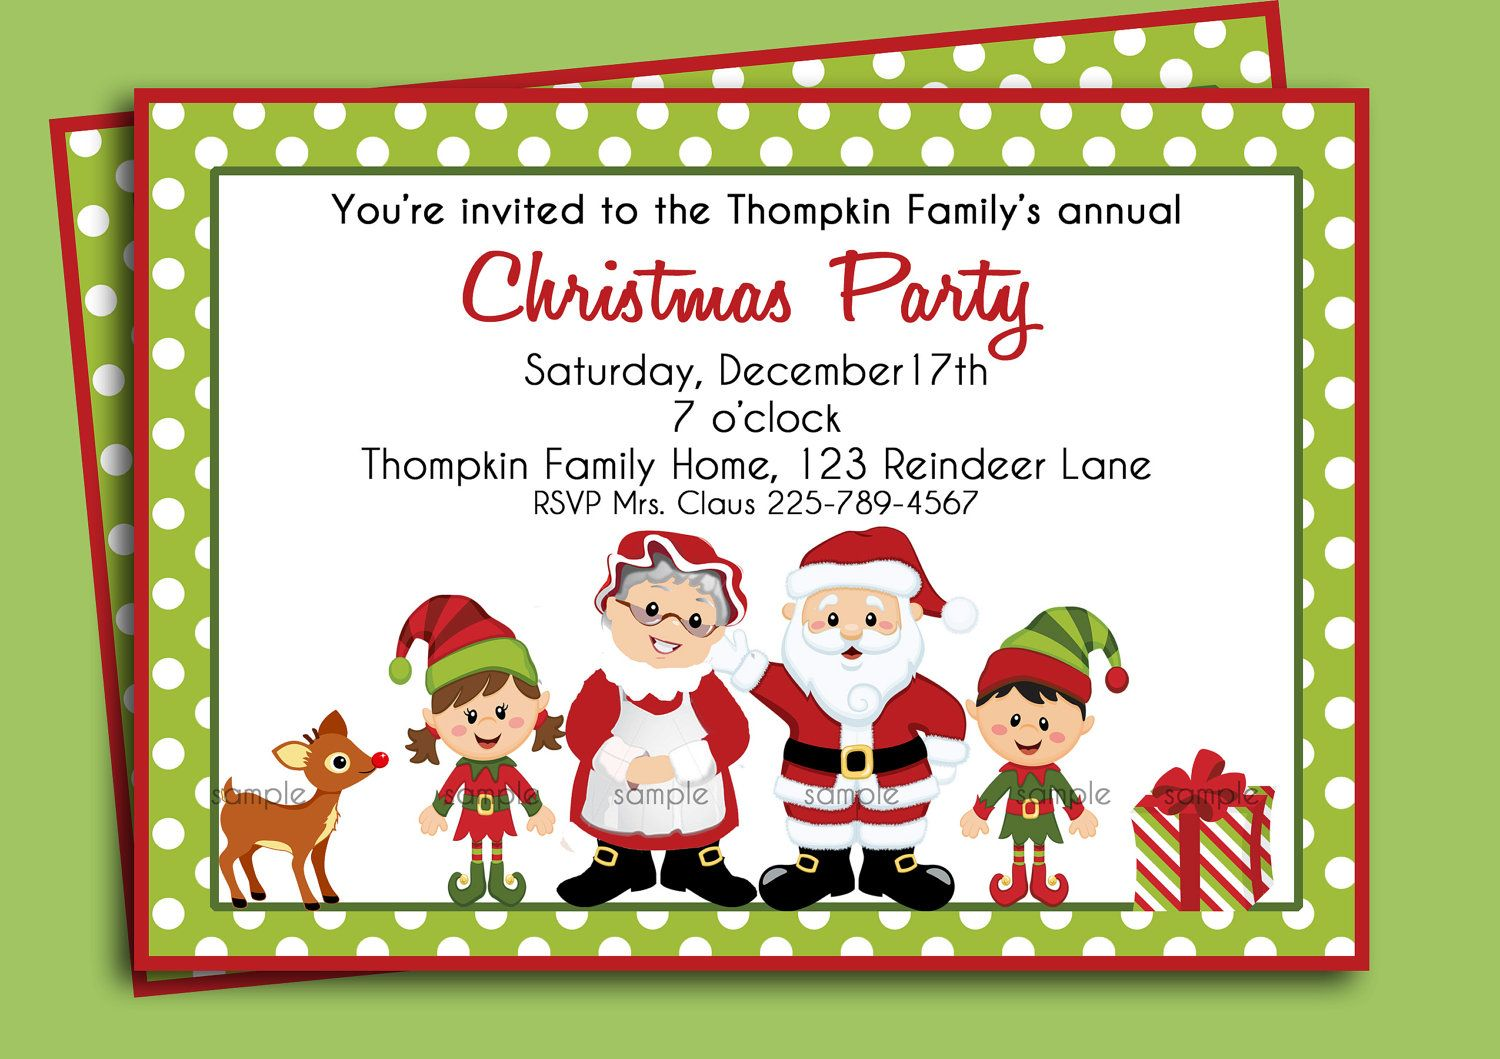 Christmas Invitations Templates Free Best Templates Pi Holiday Party Invitation Template Christmas Party Invitation Template Christmas Party Invitations Free